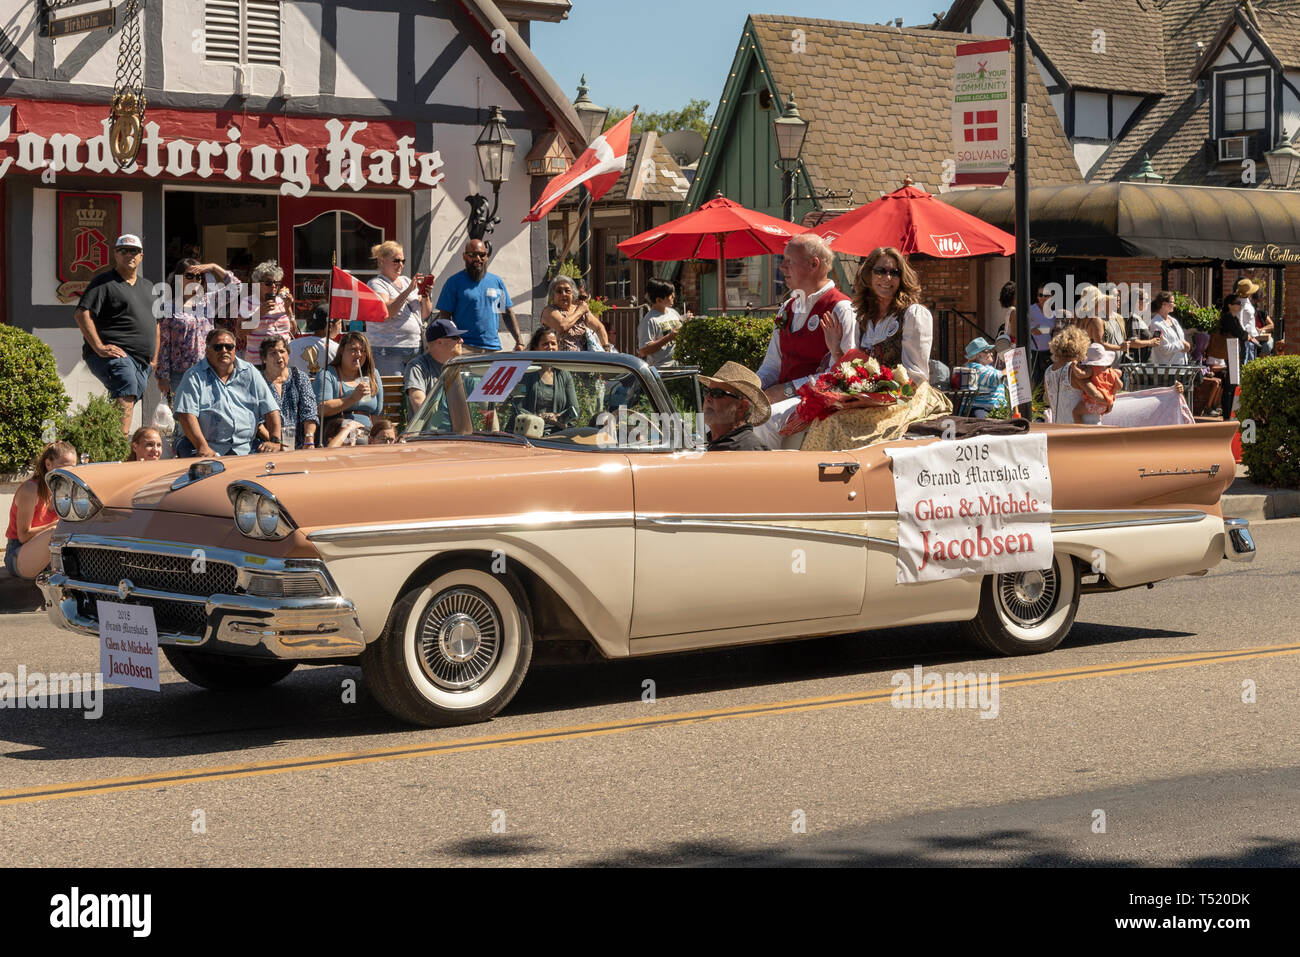 People ridding in two tone antique convertible car in street parade. - Stock Image